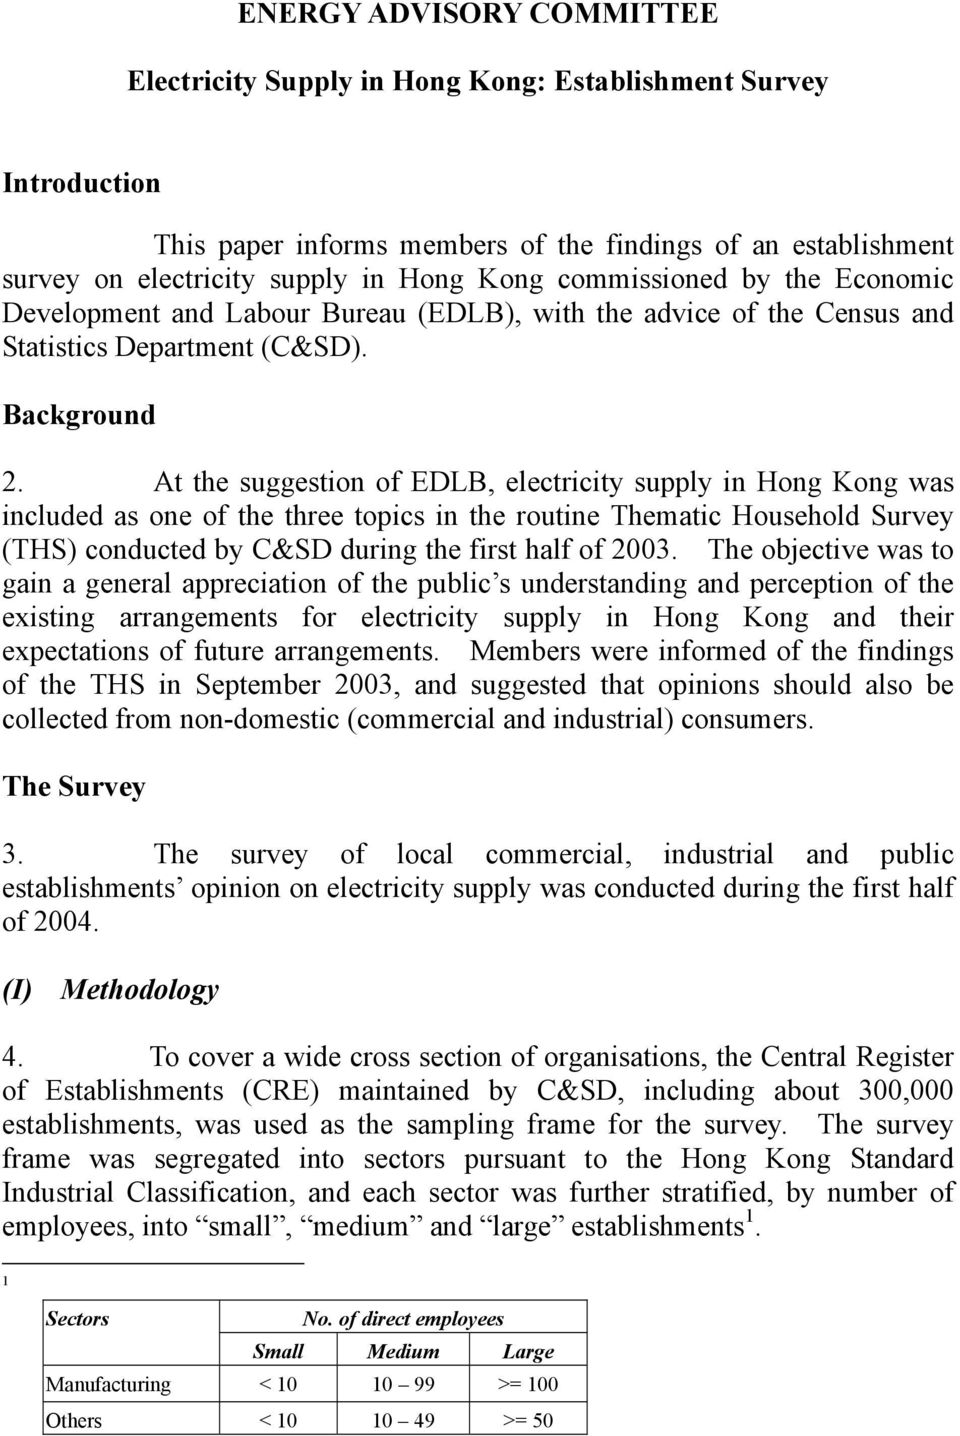 At the suggestion of EDLB, electricity supply in Hong Kong was included as one of the three topics in the routine Thematic Household Survey (THS) conducted by C&SD during the first half of 2003.